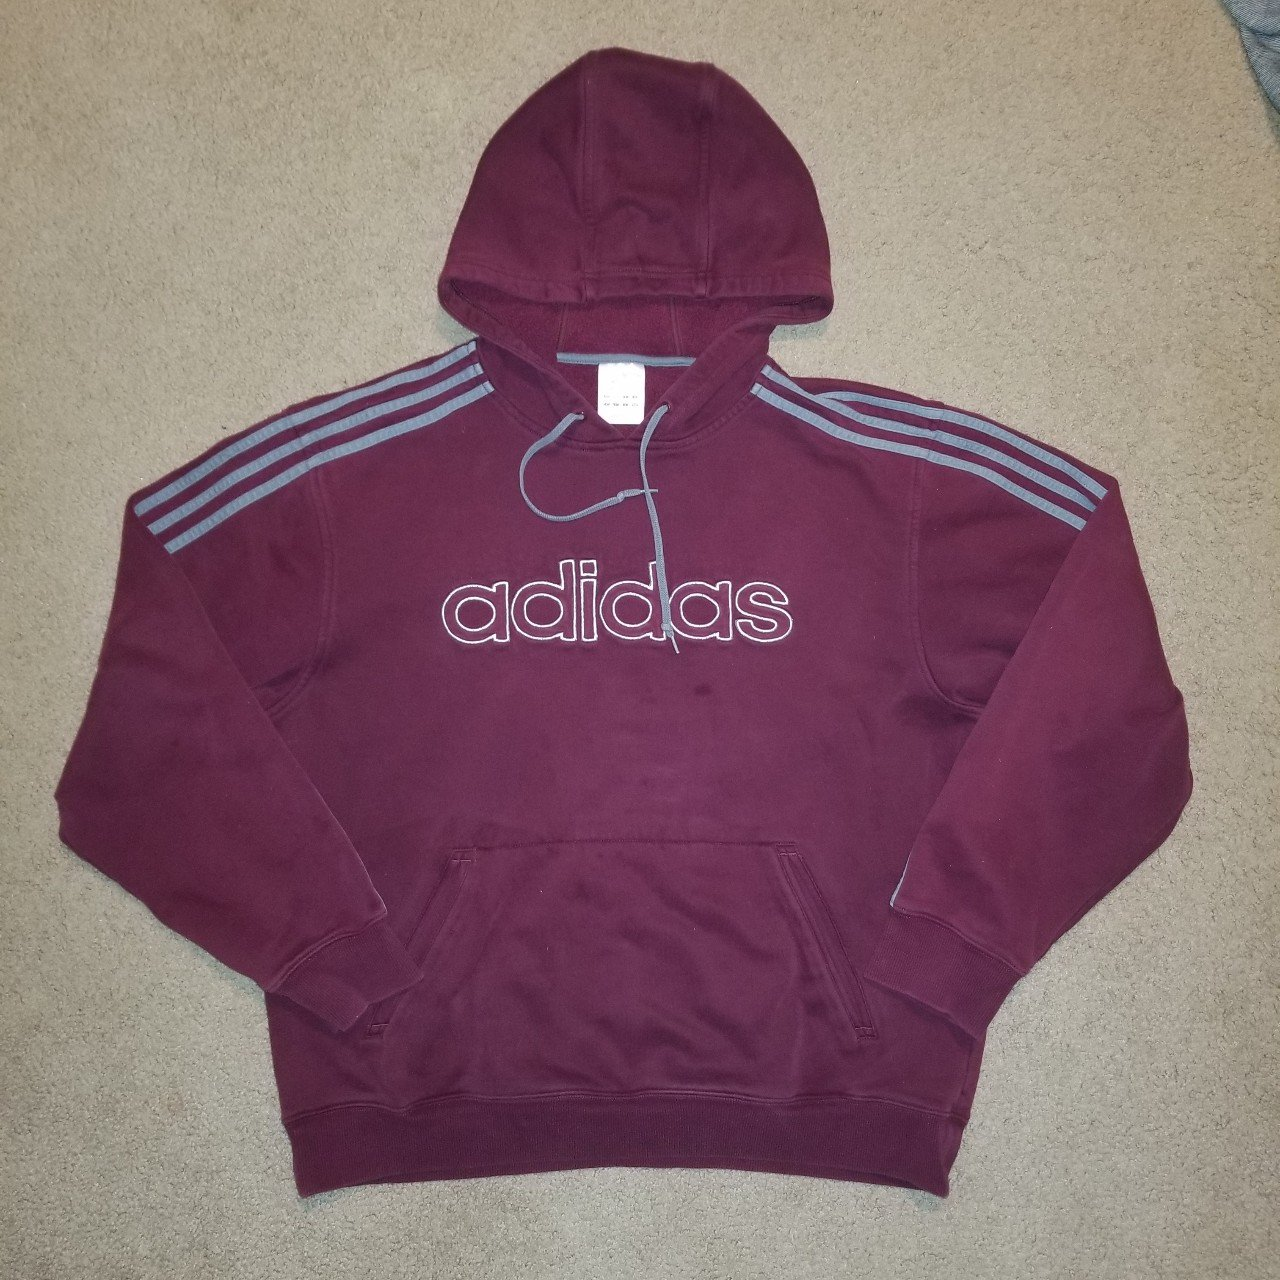 addidas pullover with zip up #aesthetic #adidas #pullover